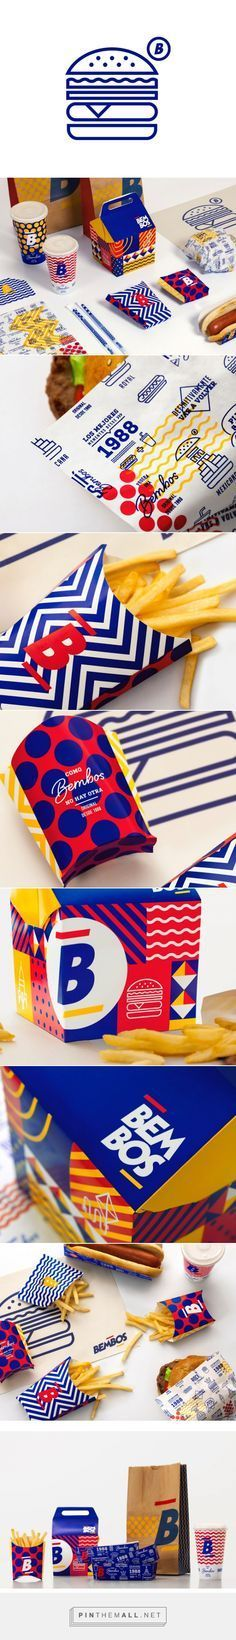 Yummy popular Bembos. packaging PD